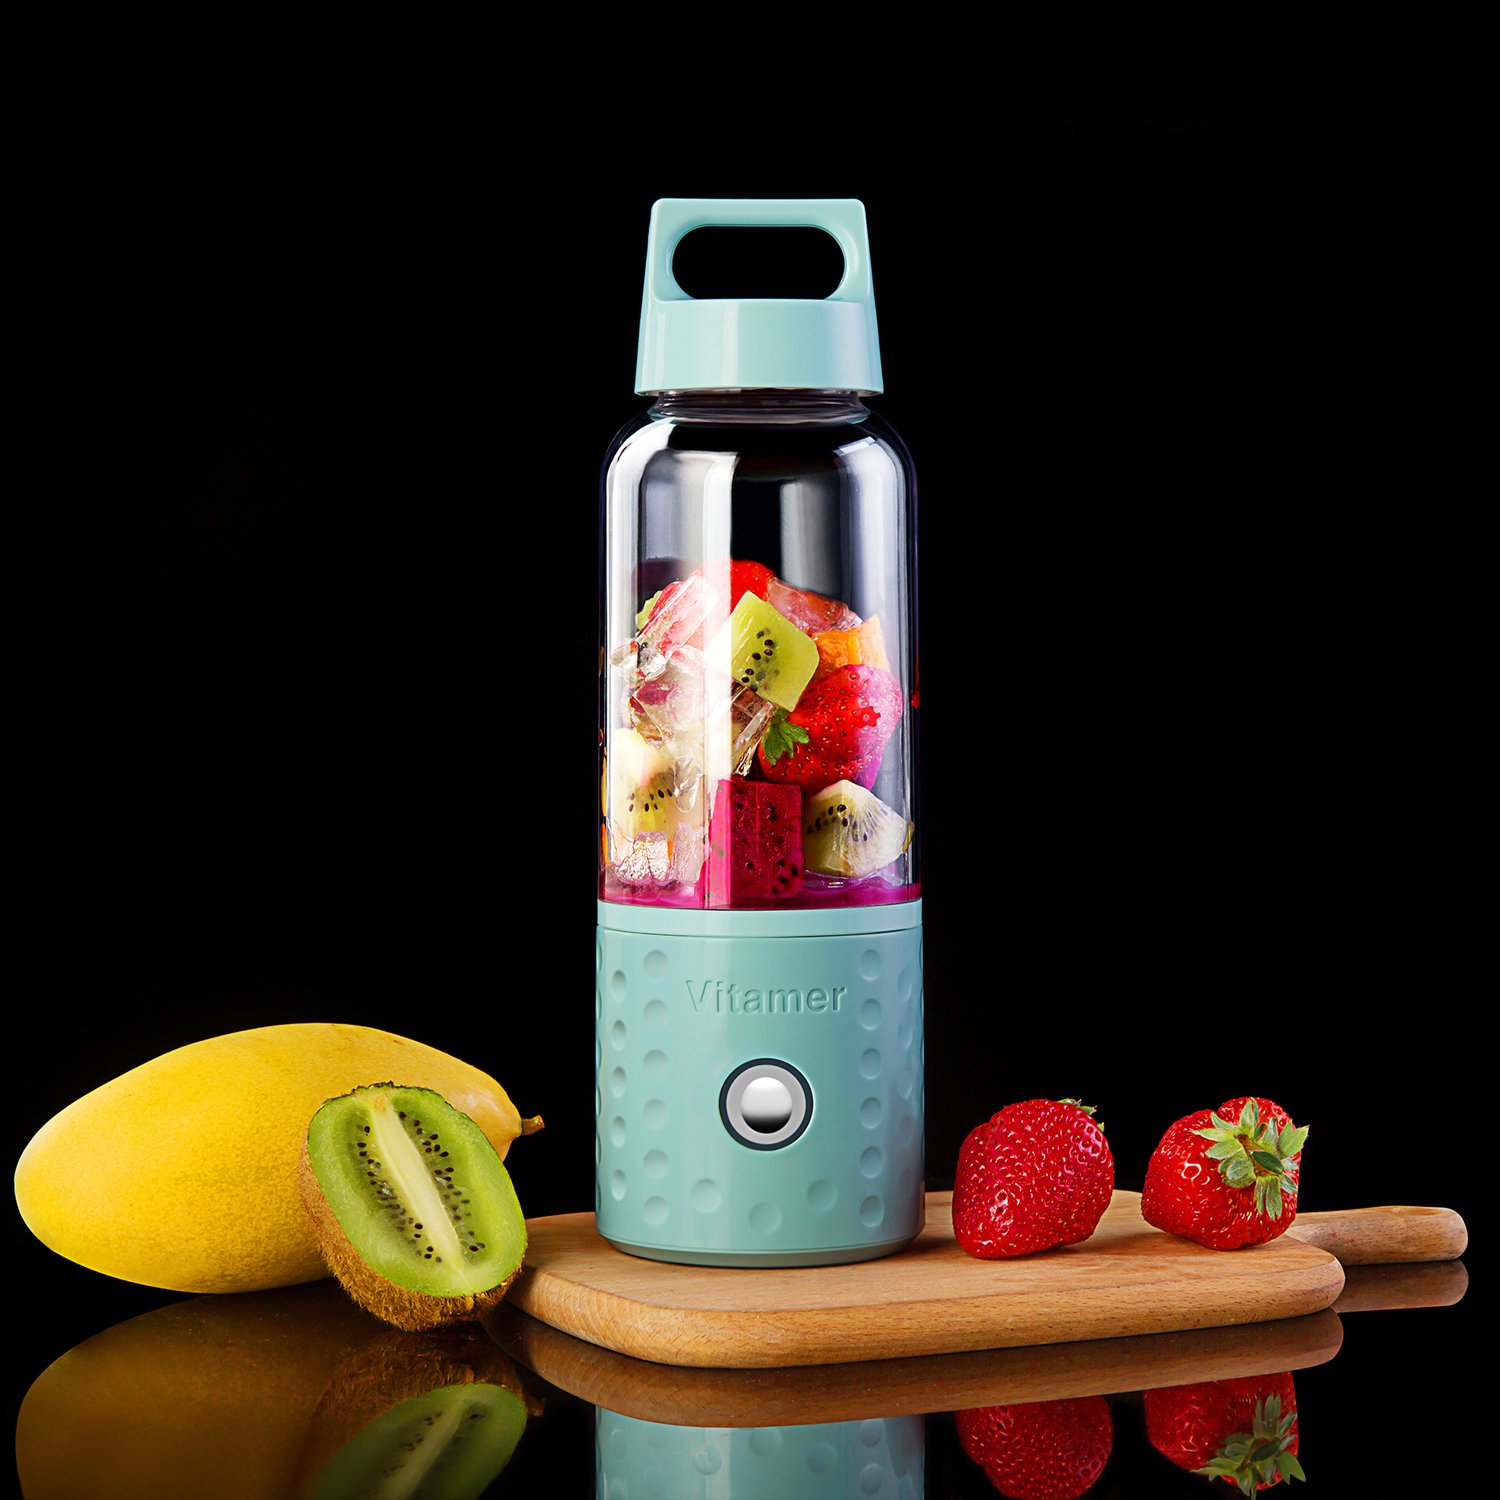 Portable Blender, TOPQSC Smoothie Blender USB Juicer Cup, 17oz Fruit Mixing Machine with 4000mAh Rechargeable Batteries, Detachable Cup, Perfect Blender for Personal Use (FDA, BPA Free) - Blue by TOPQSC (Image #5)